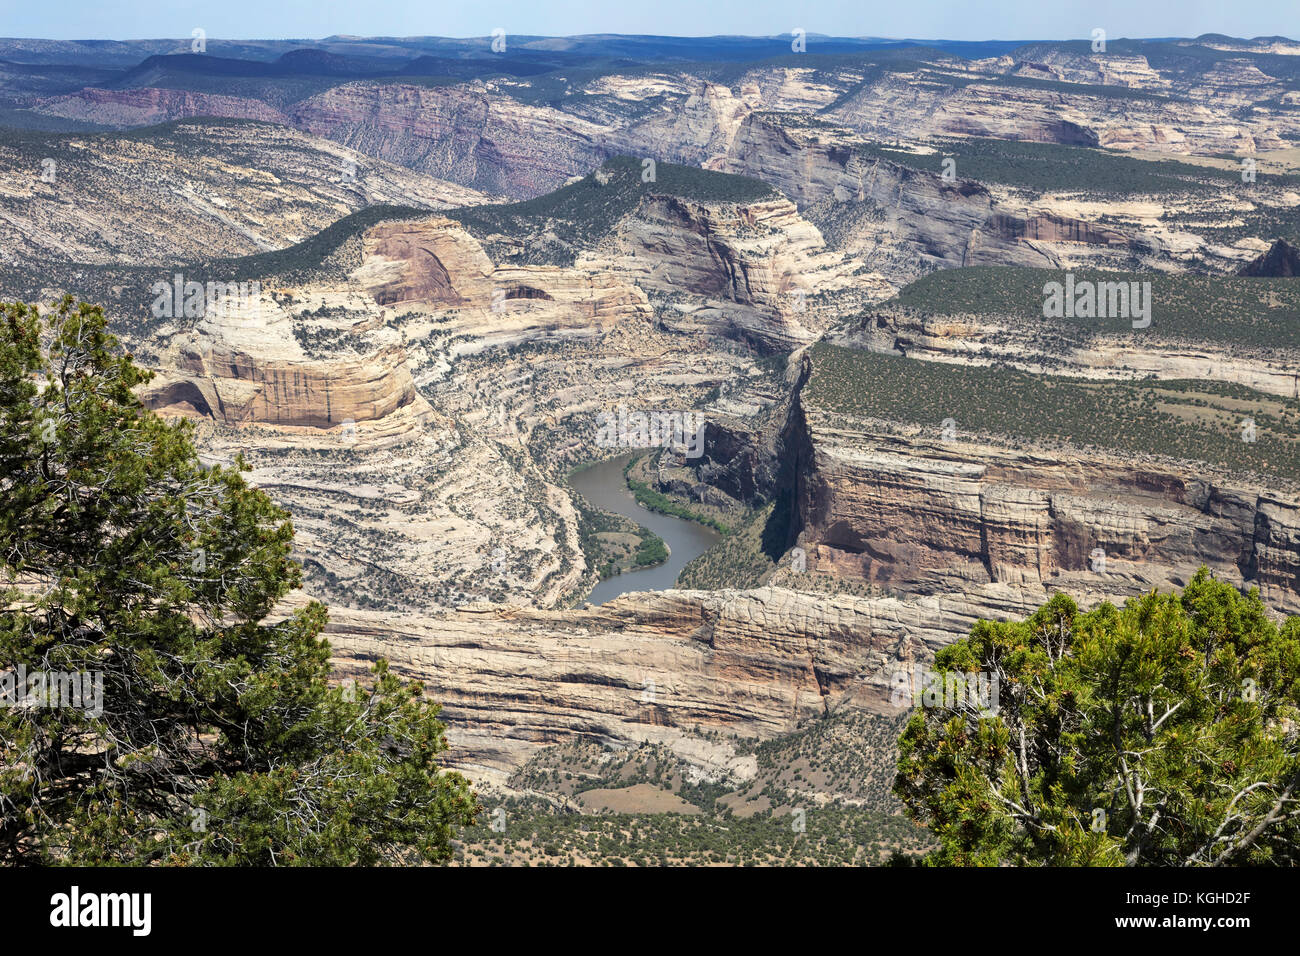 Yampa River Cutting through Geology of Dinosaur National Monument, Colorado - Stock Image